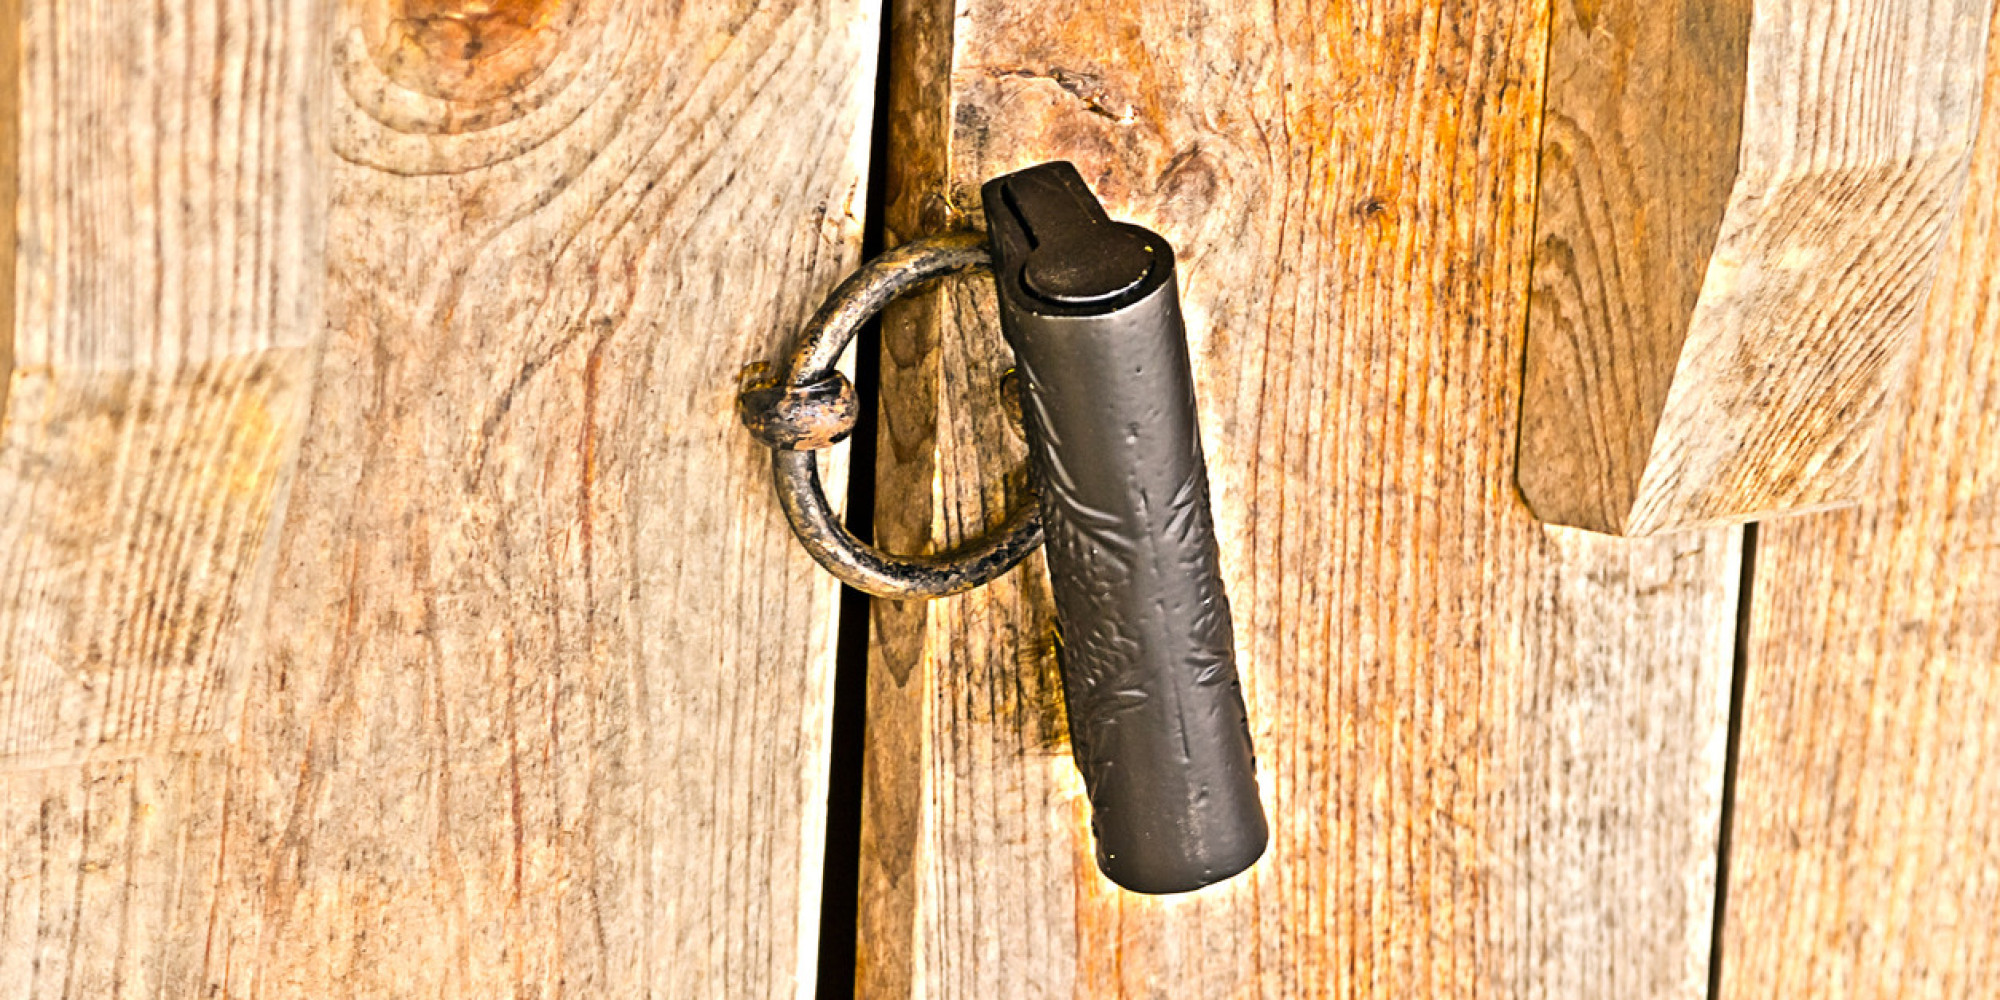 Quot Pick A Lock Quot To Overcome Obstacles A Graduation Message